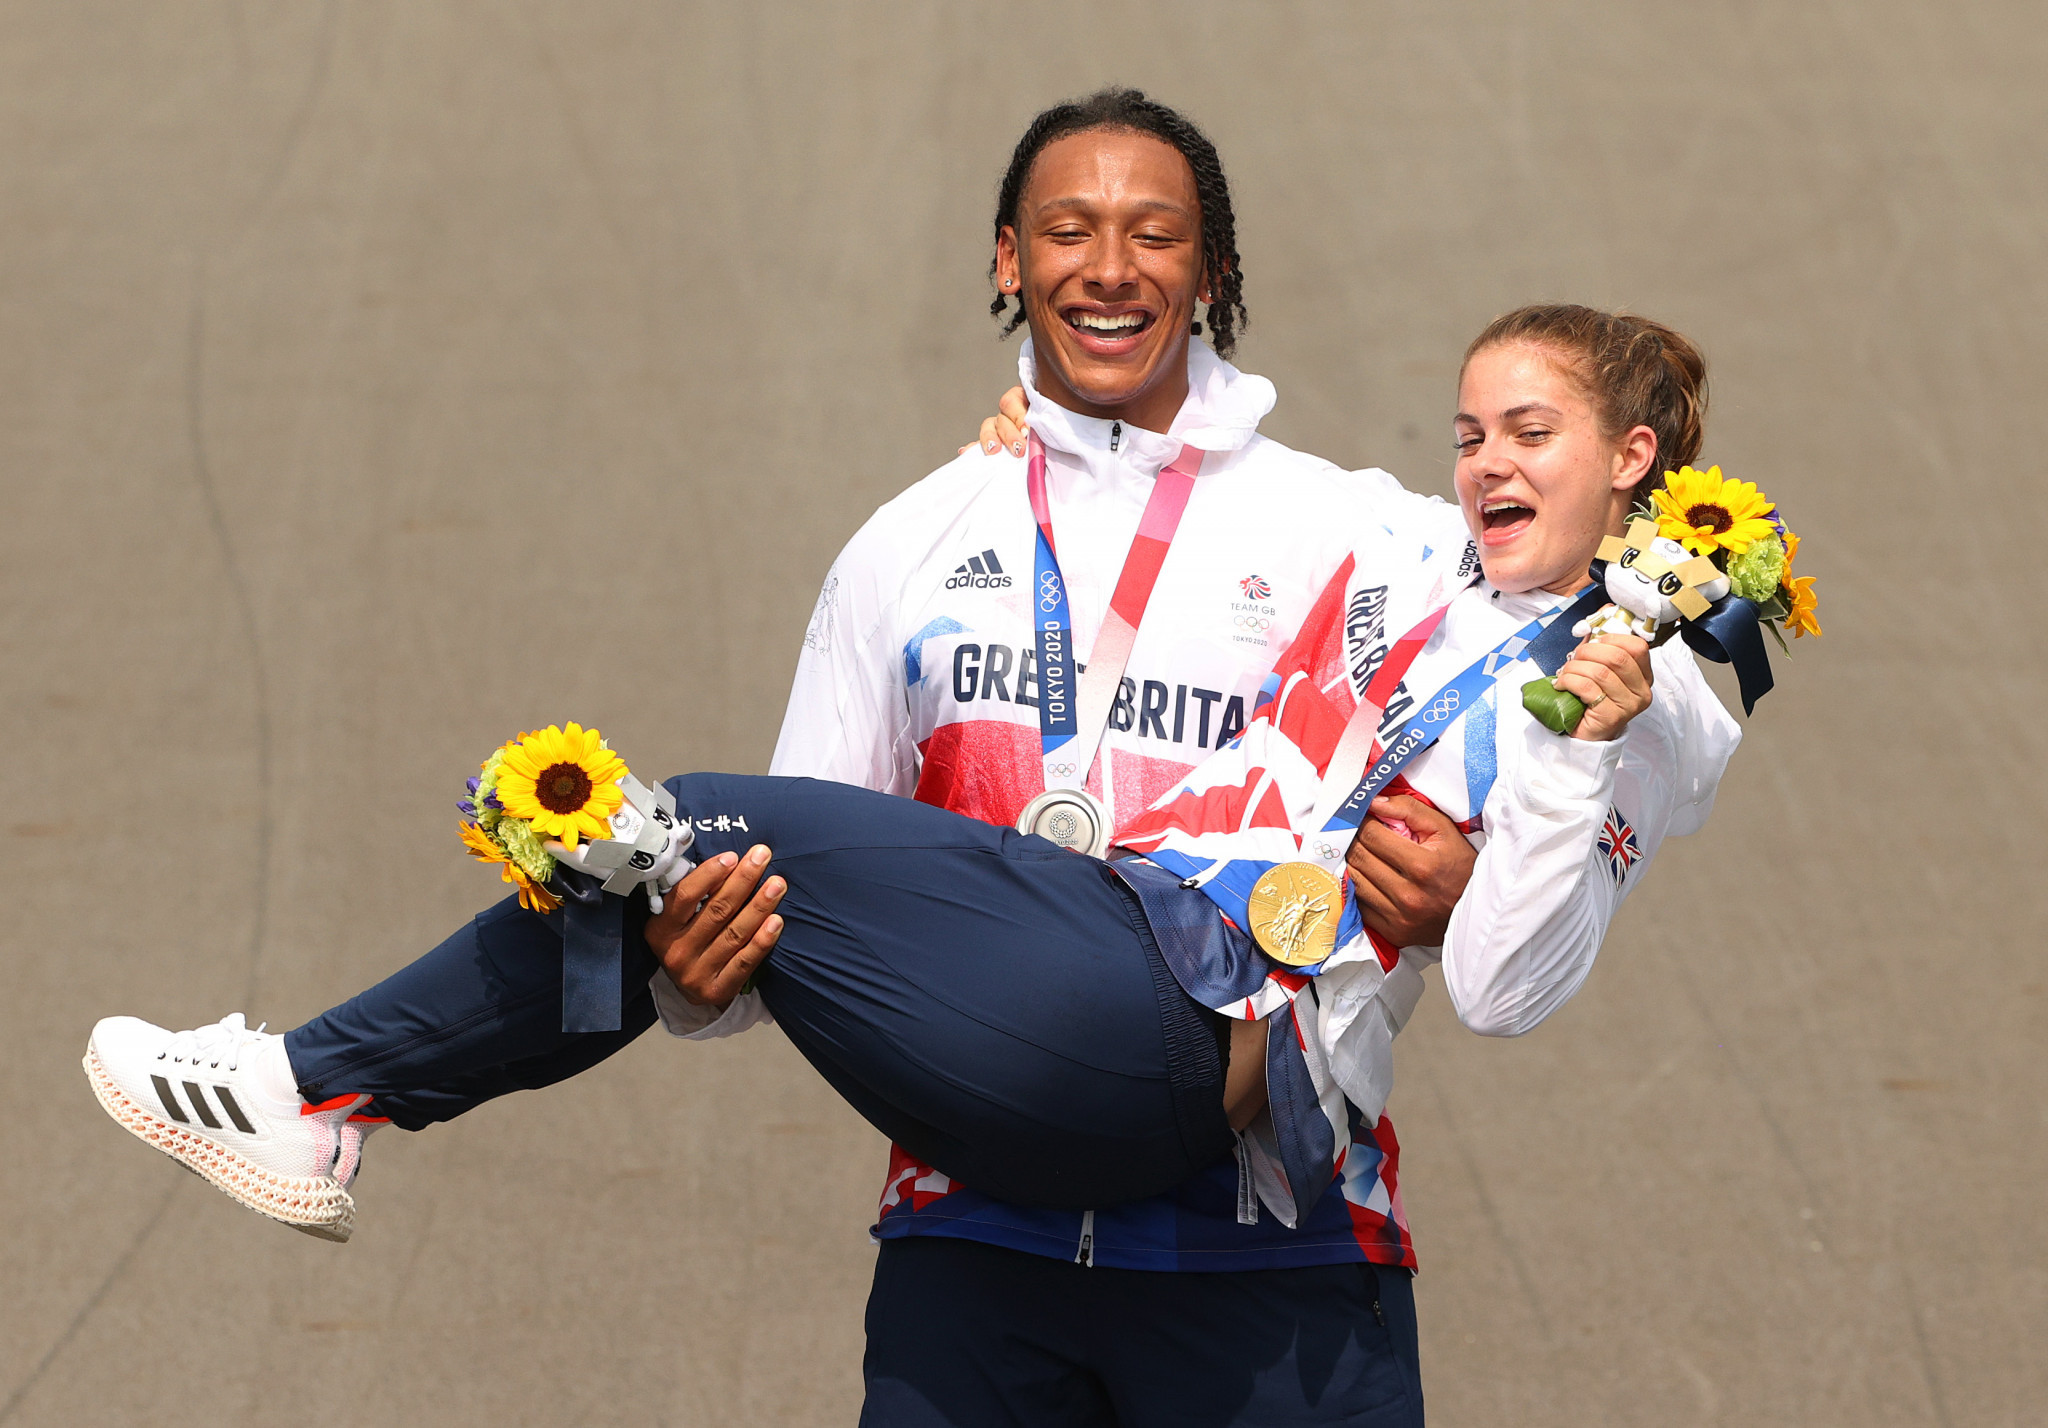 Shriever ends Pajón's reign as British rider claims Olympic BMX title at Tokyo 2020